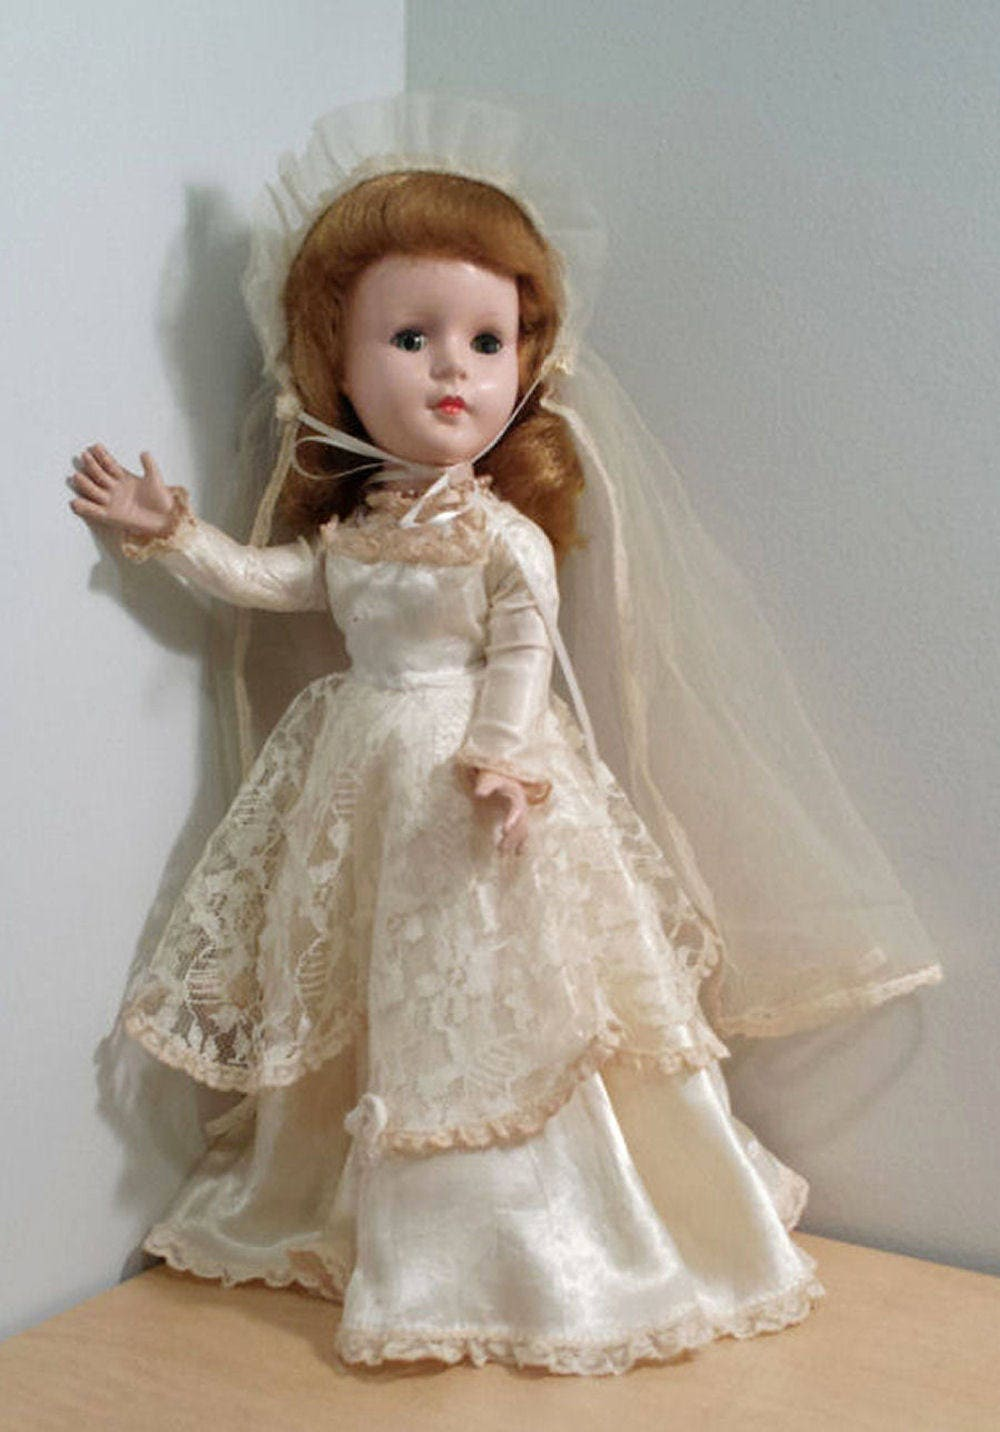 American Character Sweet Sue Bride Doll, Head Turning Walker Doll, 1950s 14 inch Wedding Doll